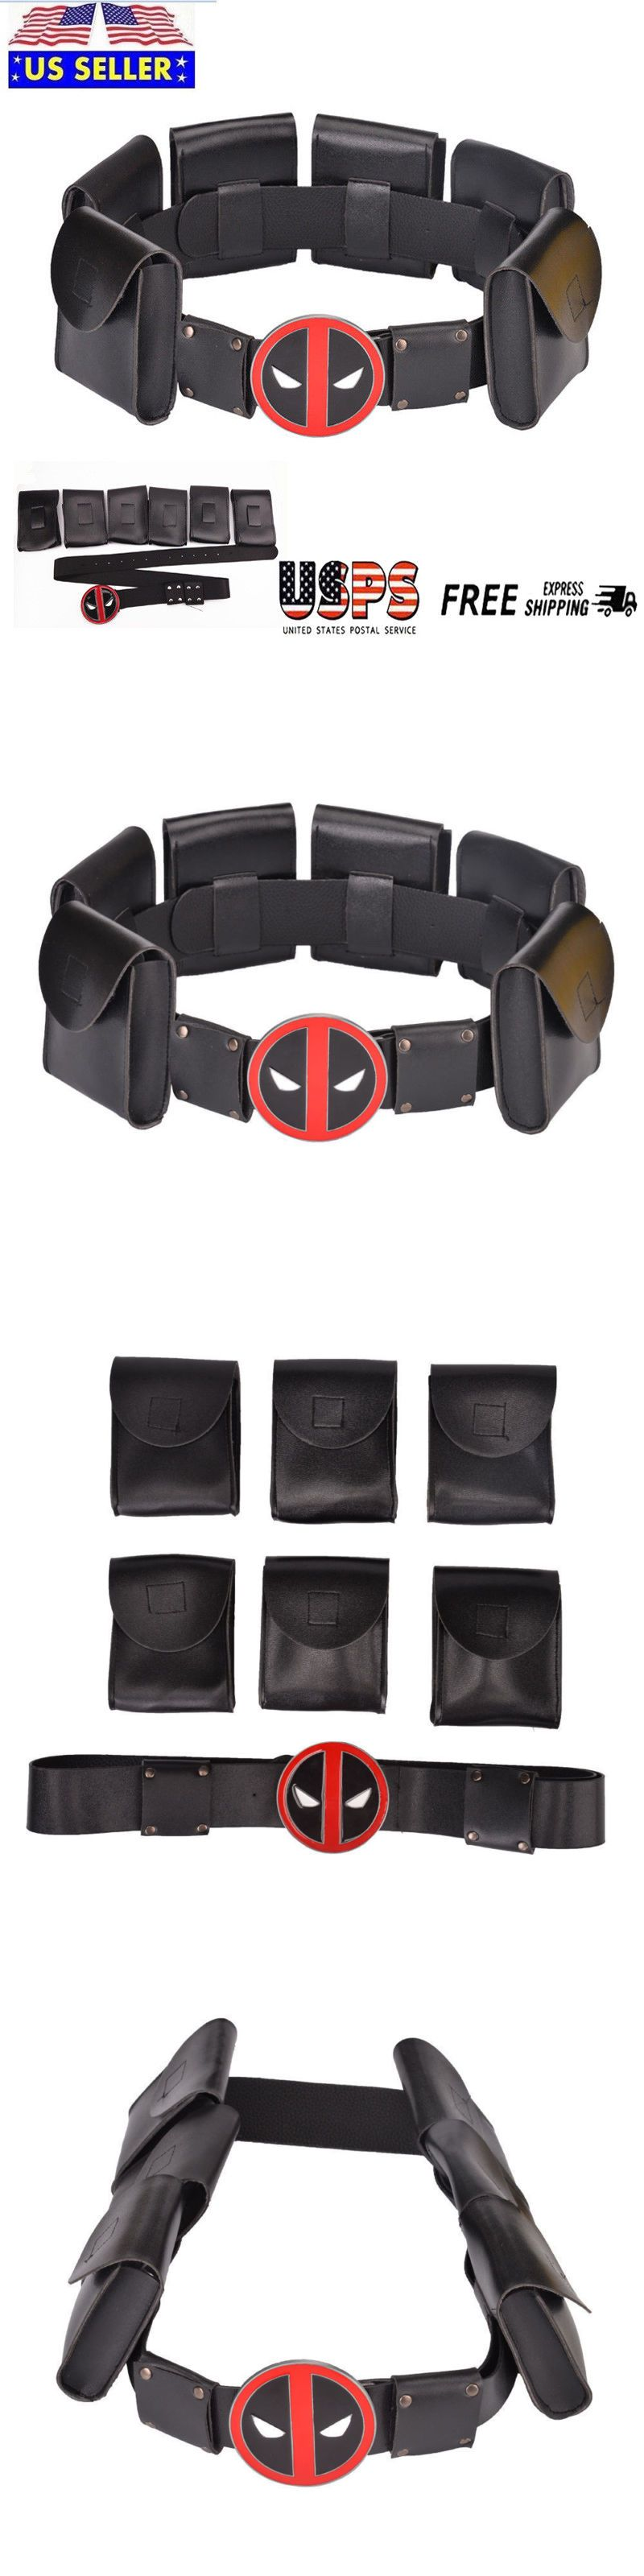 Belts and Sashes 175642  X-Men Deadpool Superhero Metal Belt Accessories  Kid Adult Cosplay Costume Us -  BUY IT NOW ONLY   19.01 on  eBay  belts   sashes ... 10e83a0c175